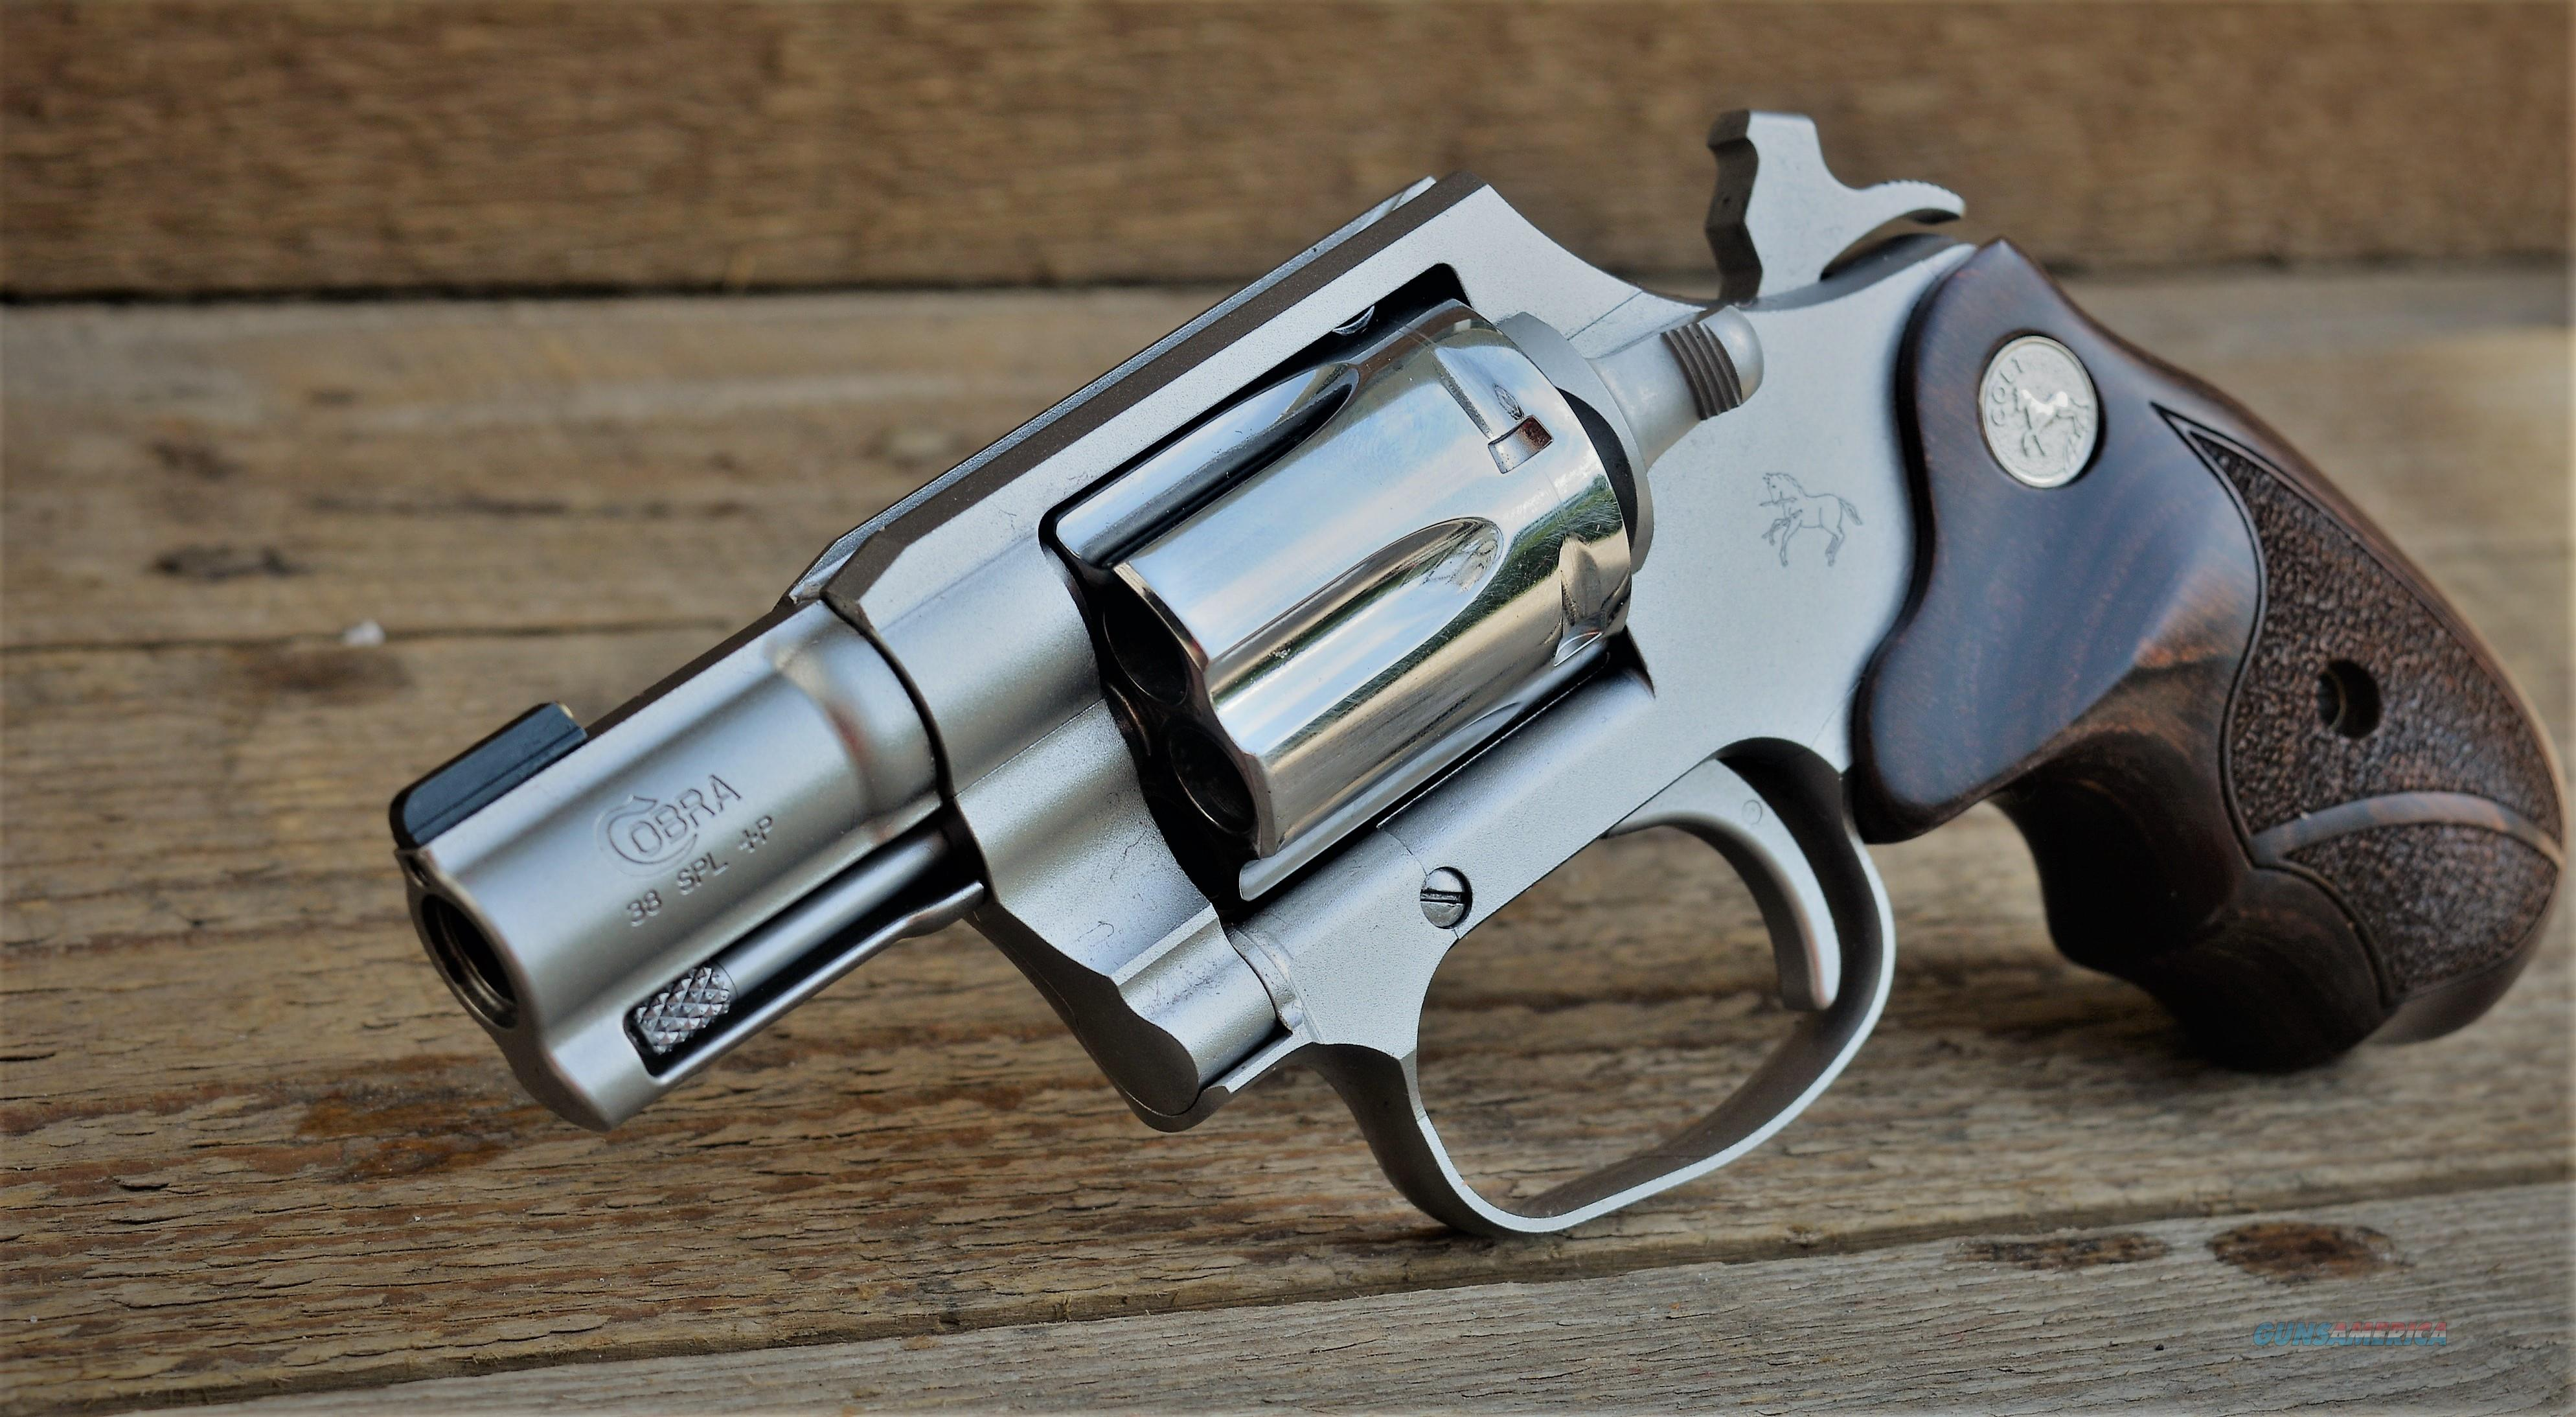 $69 Colt Cobra Conceal & Carry Wood Medallion Grips High Polish 38 Spl+P Revolver  Double action Hammer Pulls Back for smooth Shooting stainless steel frame Brass Bead COBRASC2BB  Guns > Pistols > Colt Double Action Revolvers- Modern